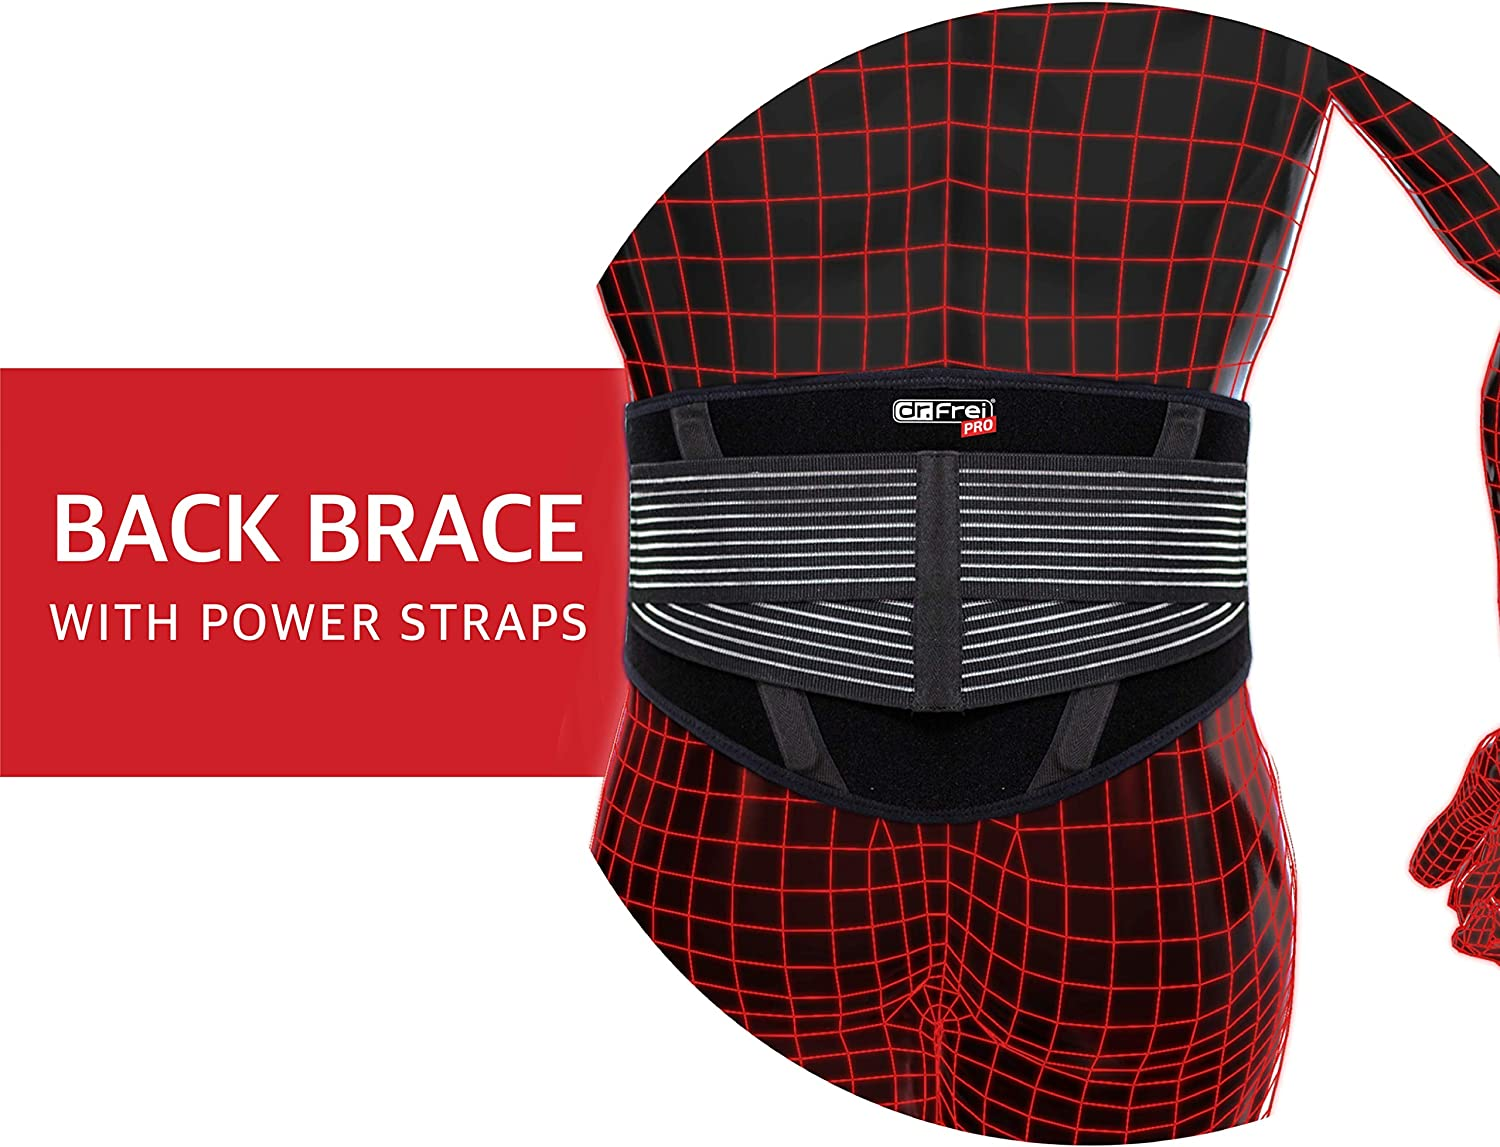 Frei Pro Back Brace with Adjustable Power Straps for Pain Relief dr One Size Fits Most